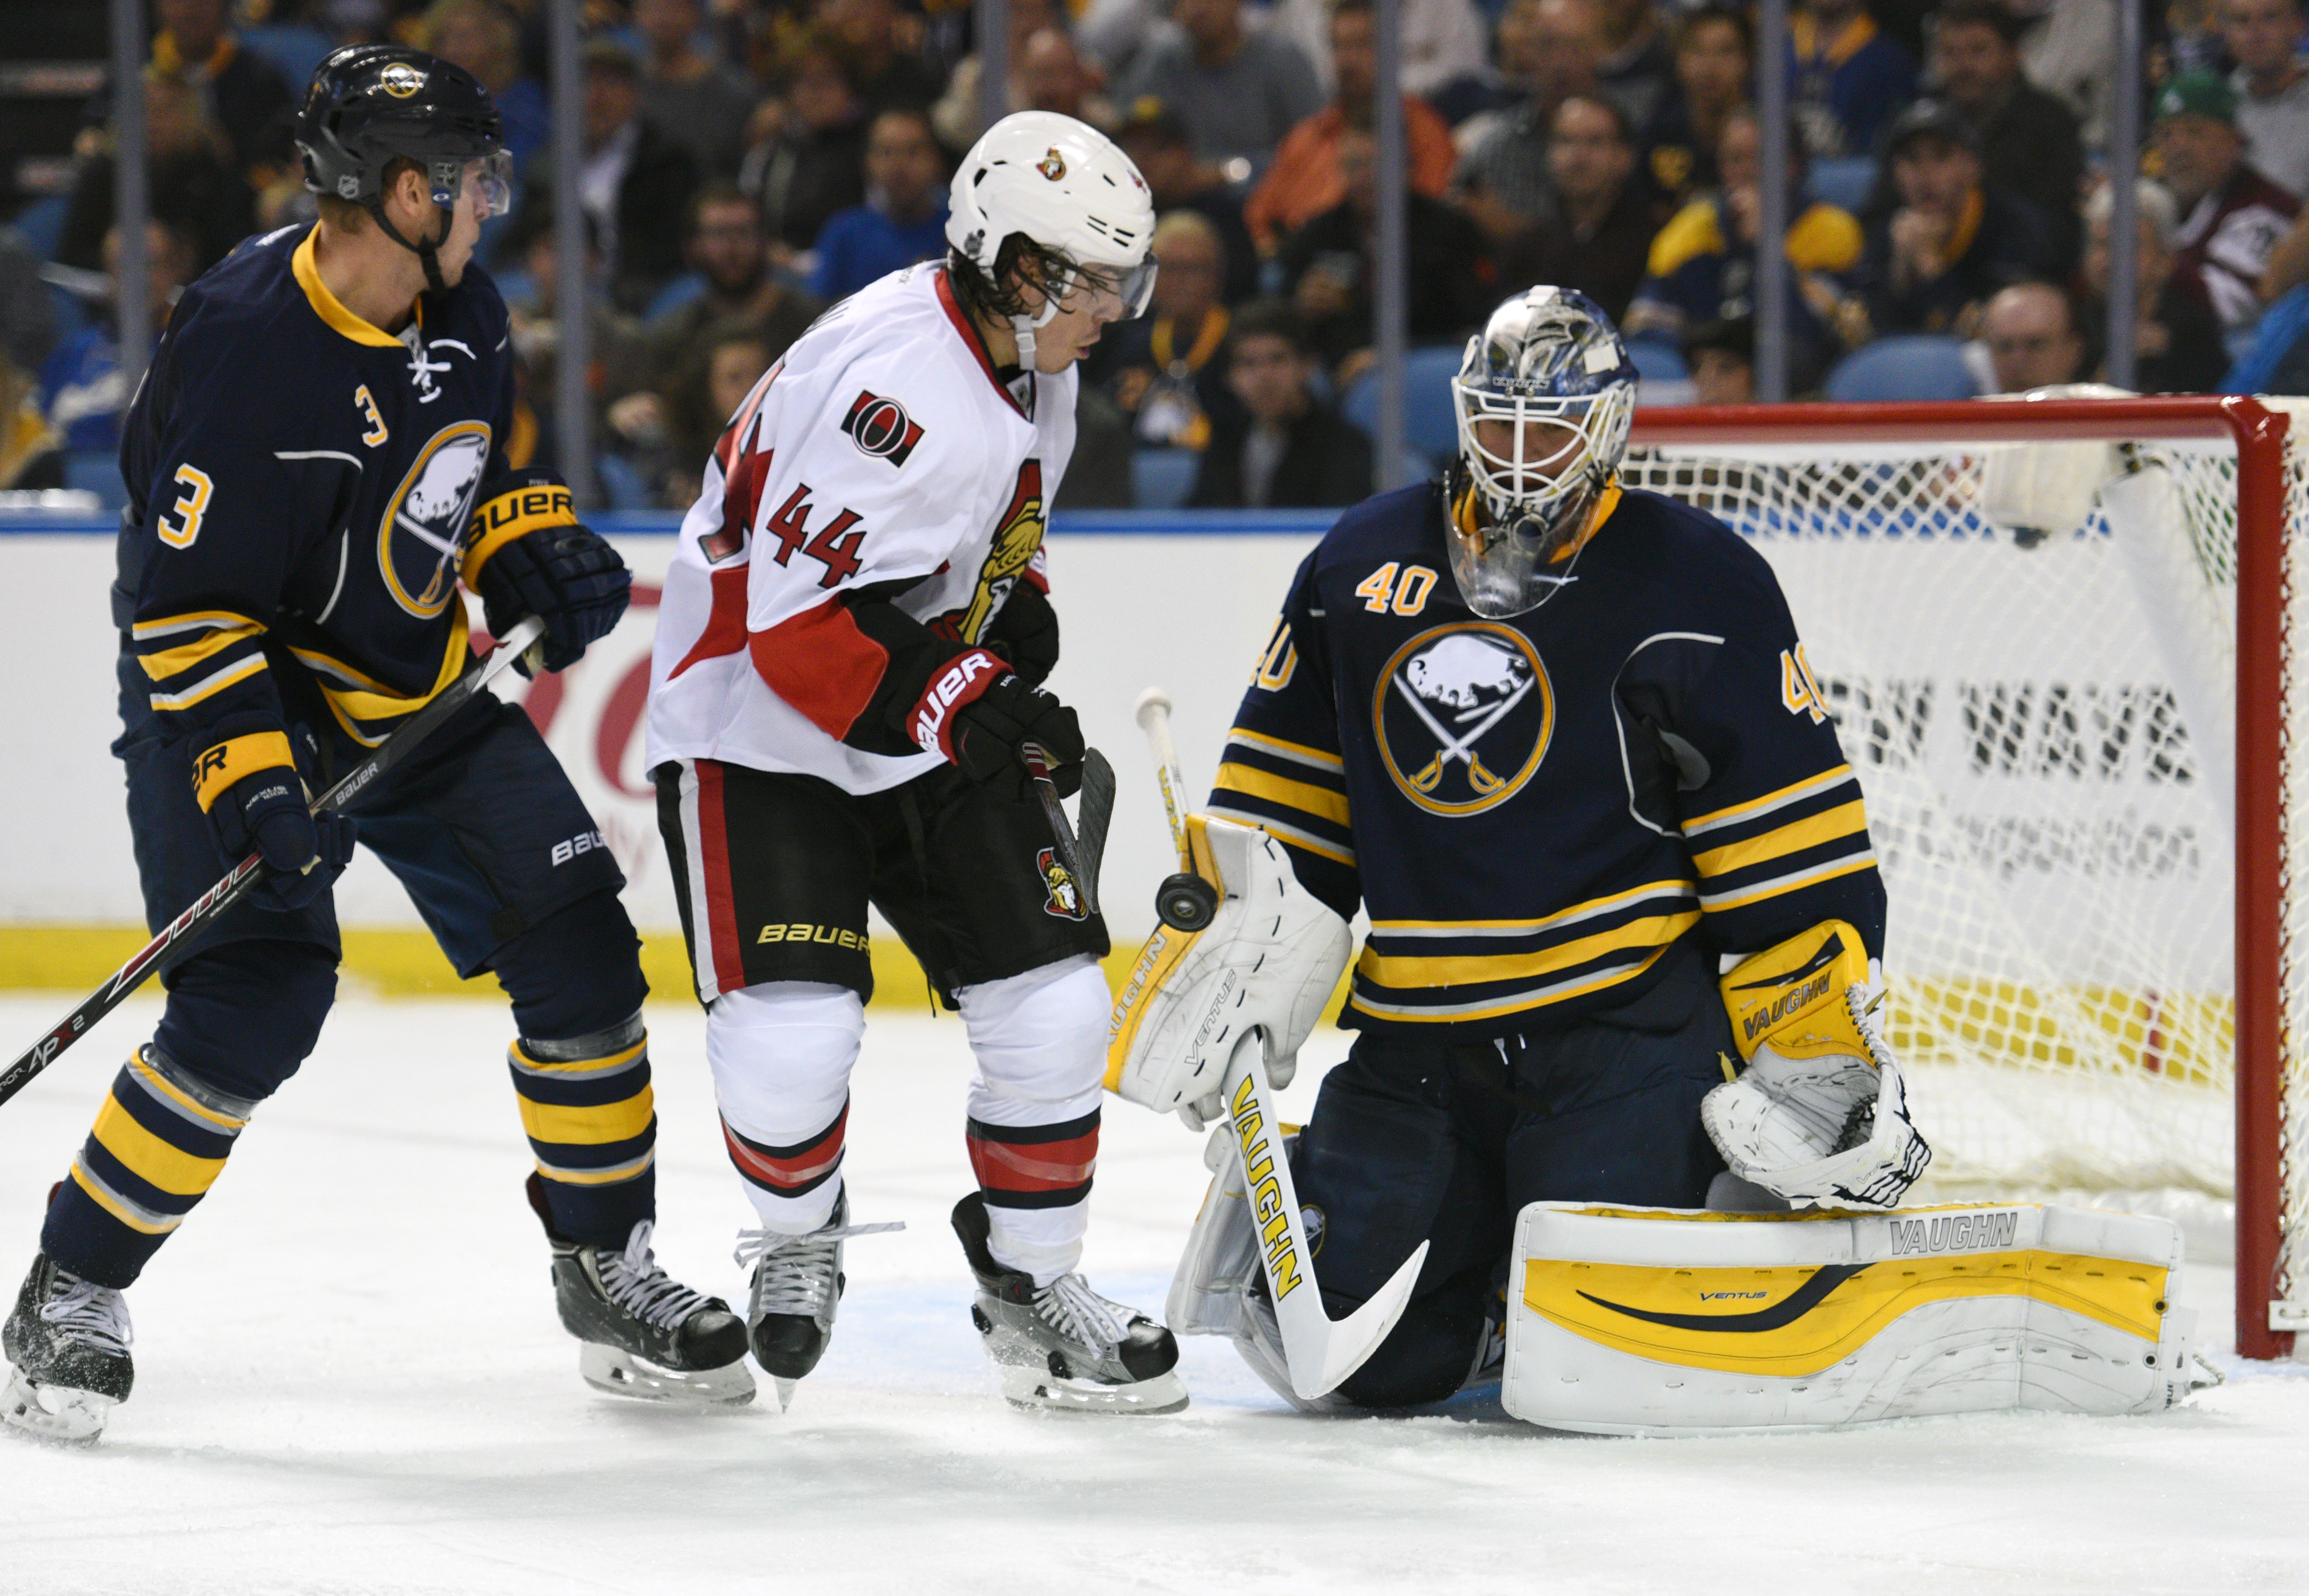 Buffalo Sabres defenseman Mark Pysyk (3) and Ottawa Senators center Jean-Gabriel Pageau (44) watch the blocker save from Sabres goaltender Robin Lehner (40) during the second period of an NHL hockey game, Thursday, Oct. 8, 2015, in Buffalo, N.Y. (AP Photo